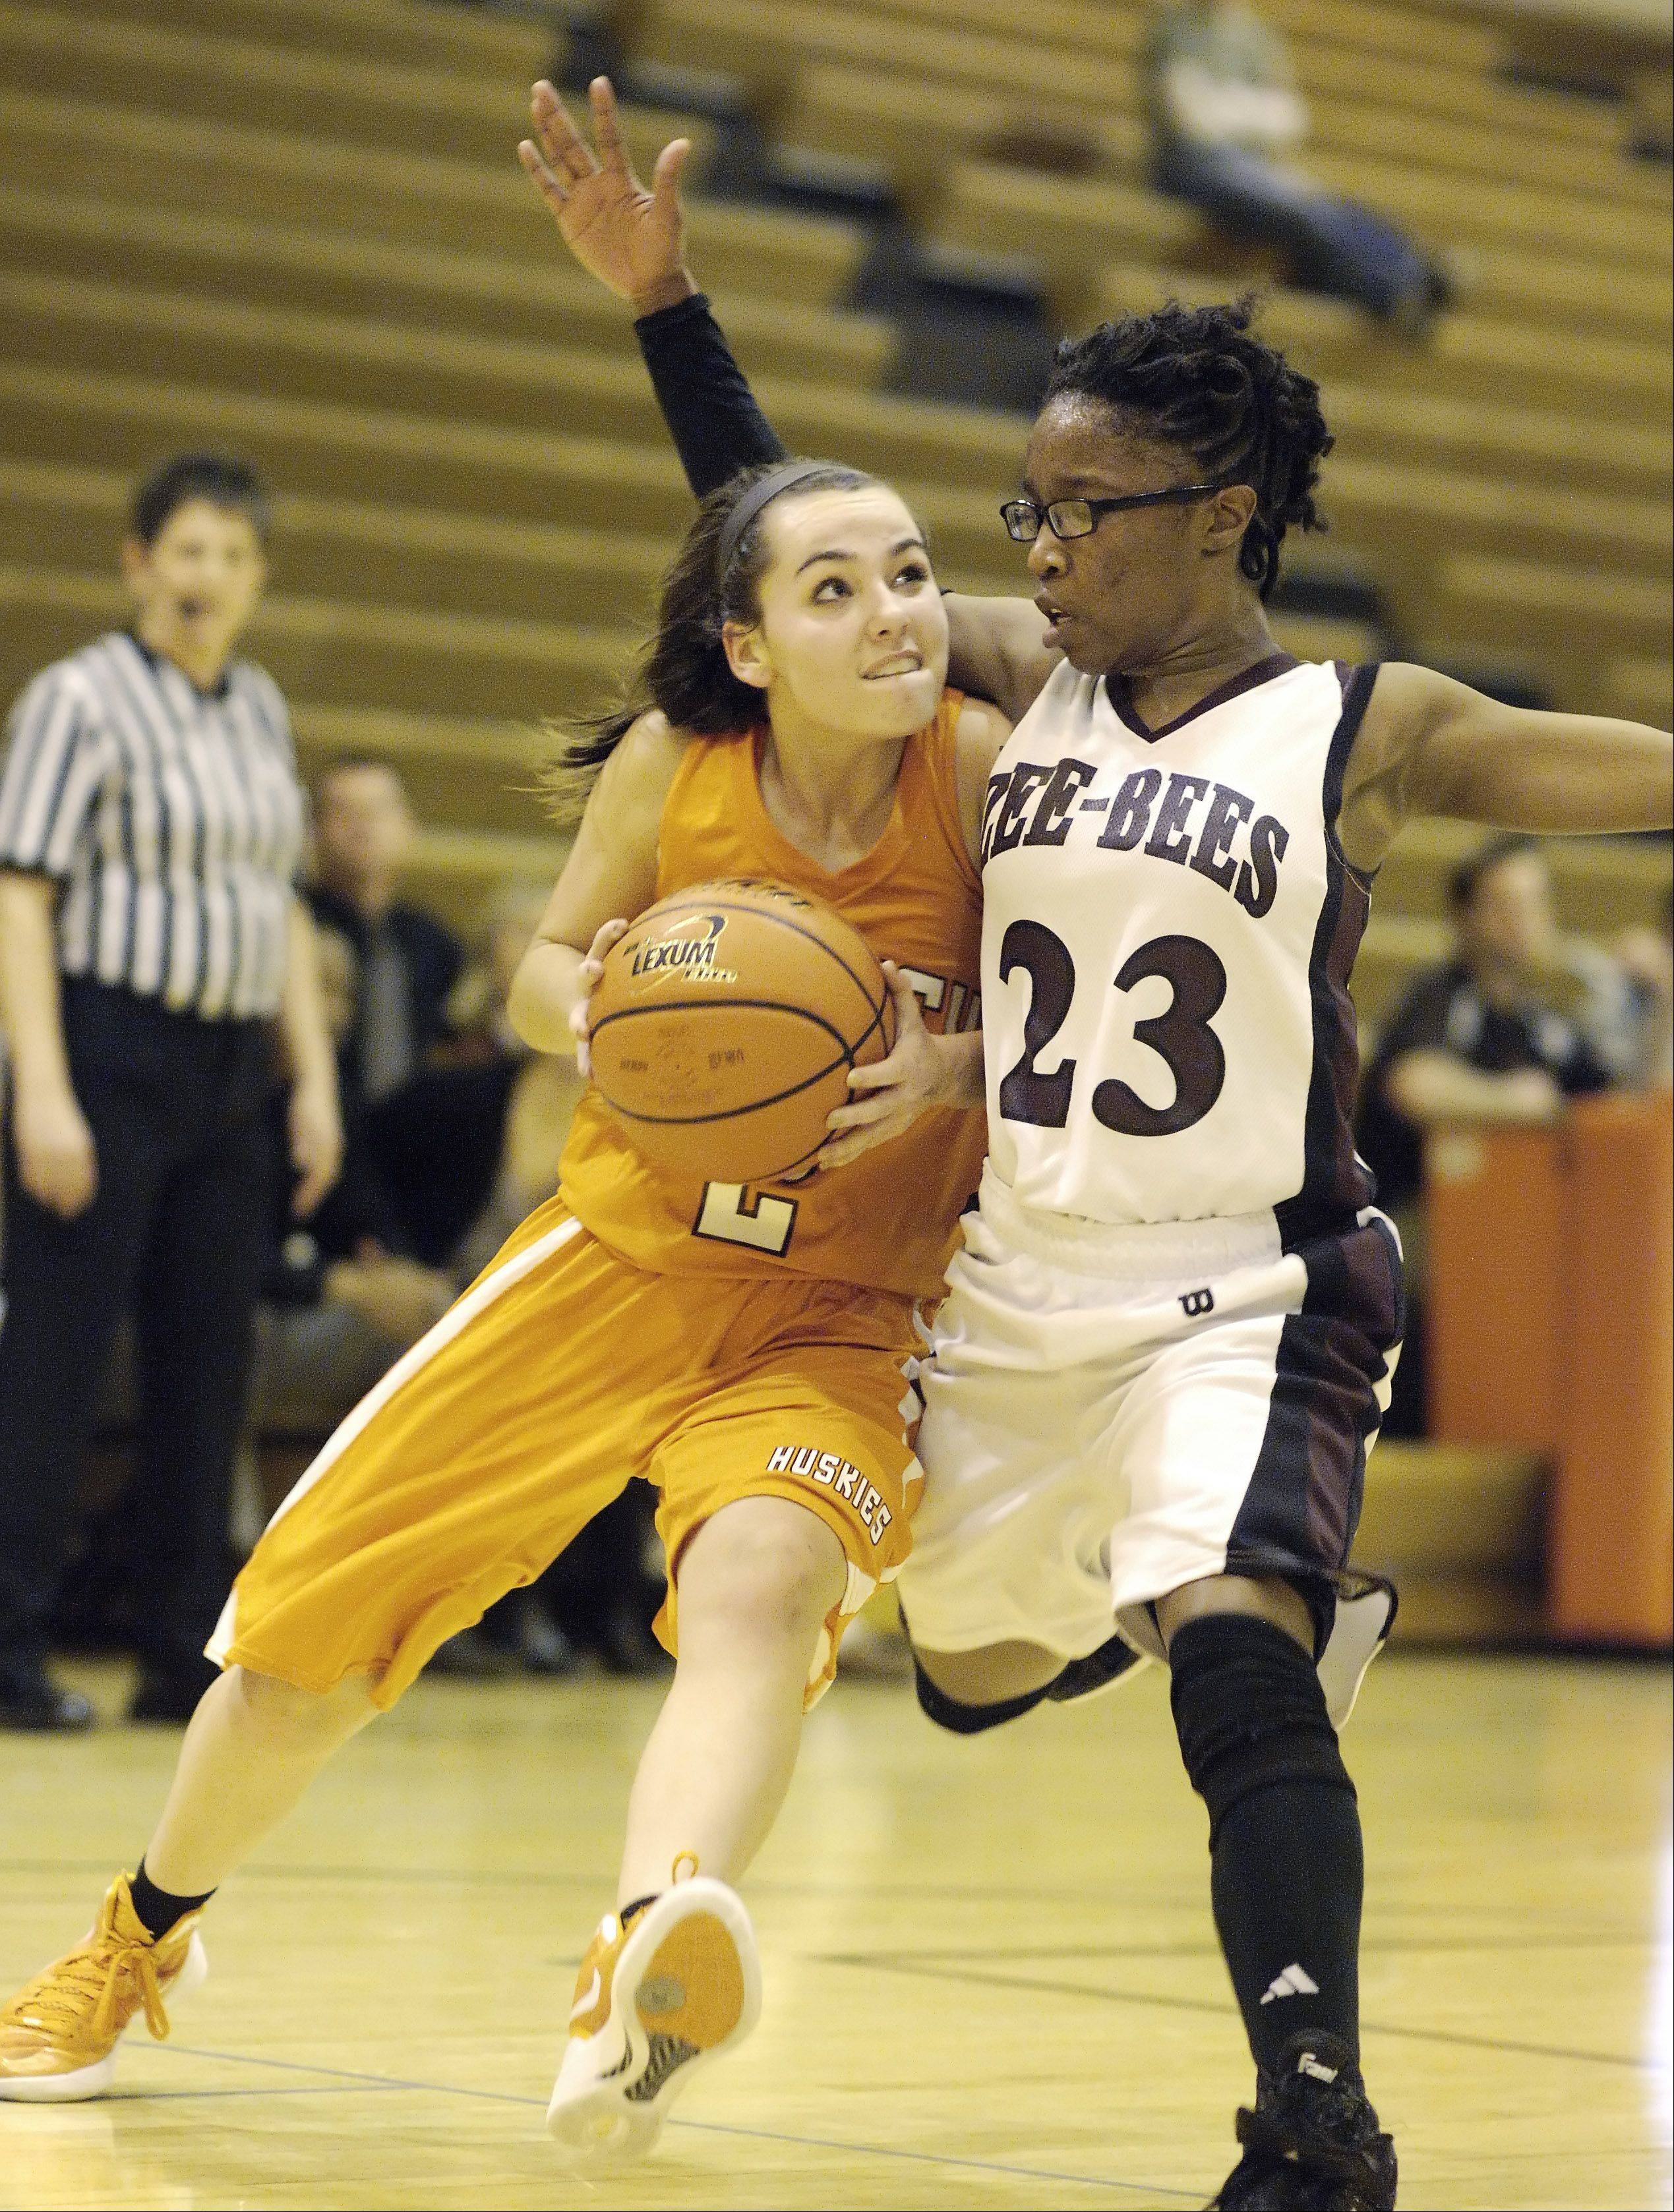 Hersey's Jen Hall makes her way past Zion-Benton's Shania Thompson during Wednesday's regional semifinal at Hersey High School in Arlington Heights.